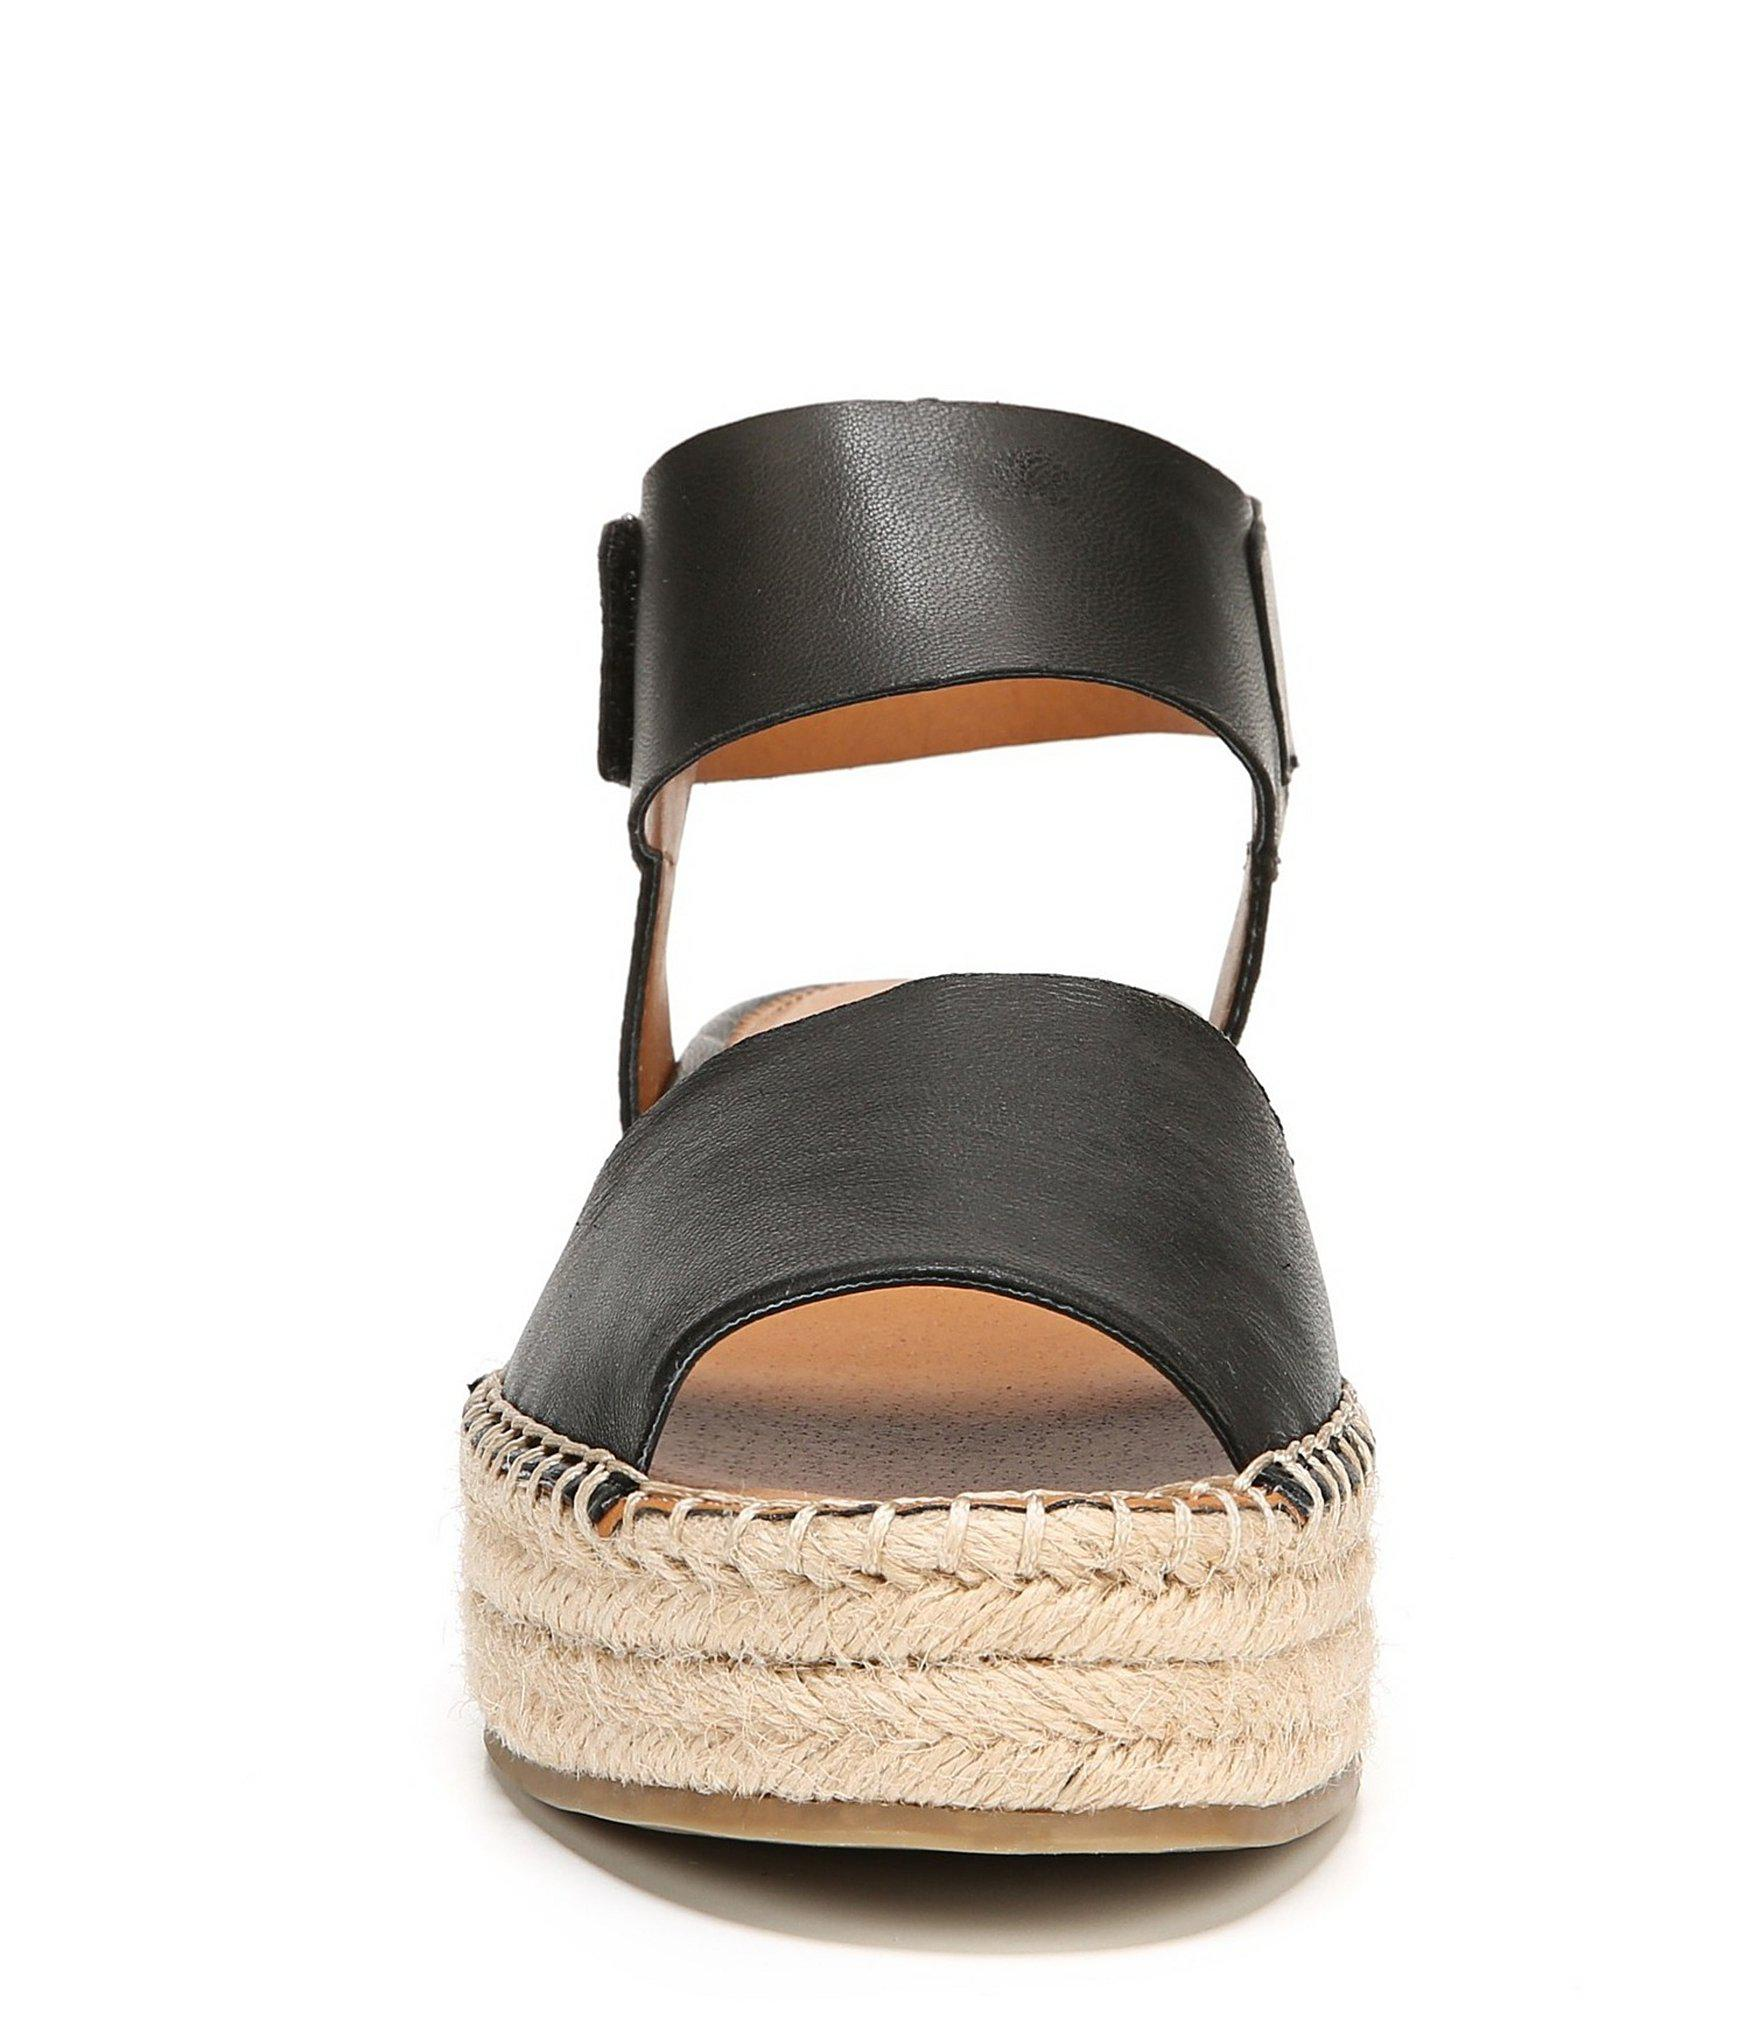 b98680cd3a95 Lyst - Franco Sarto Sarto By Oak Ankle Strap Espadrille Sandals in Black